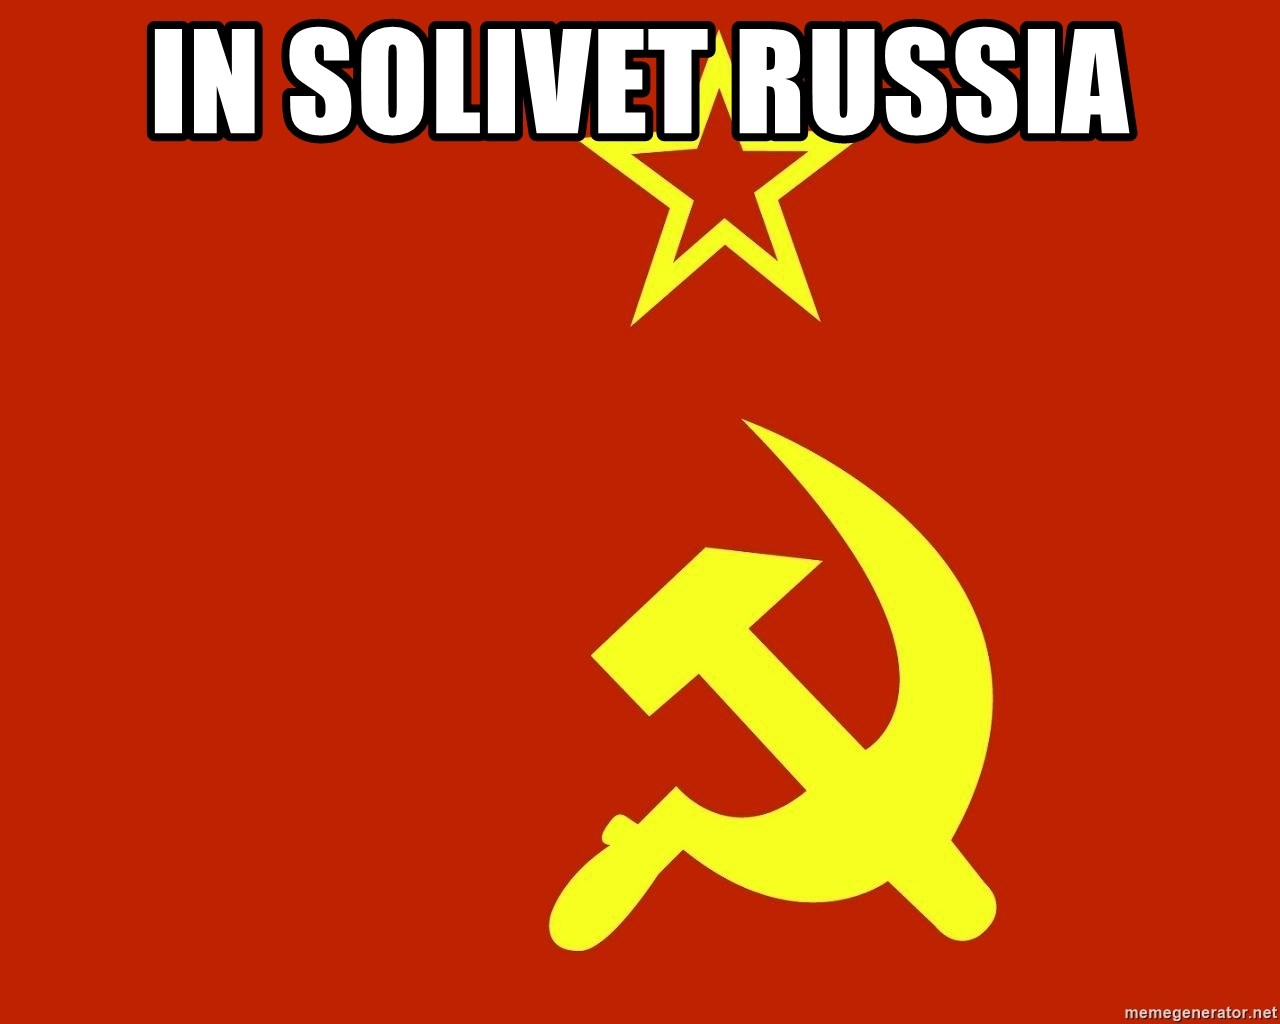 In Soviet Russia - IN SOLIVET RUSSIA